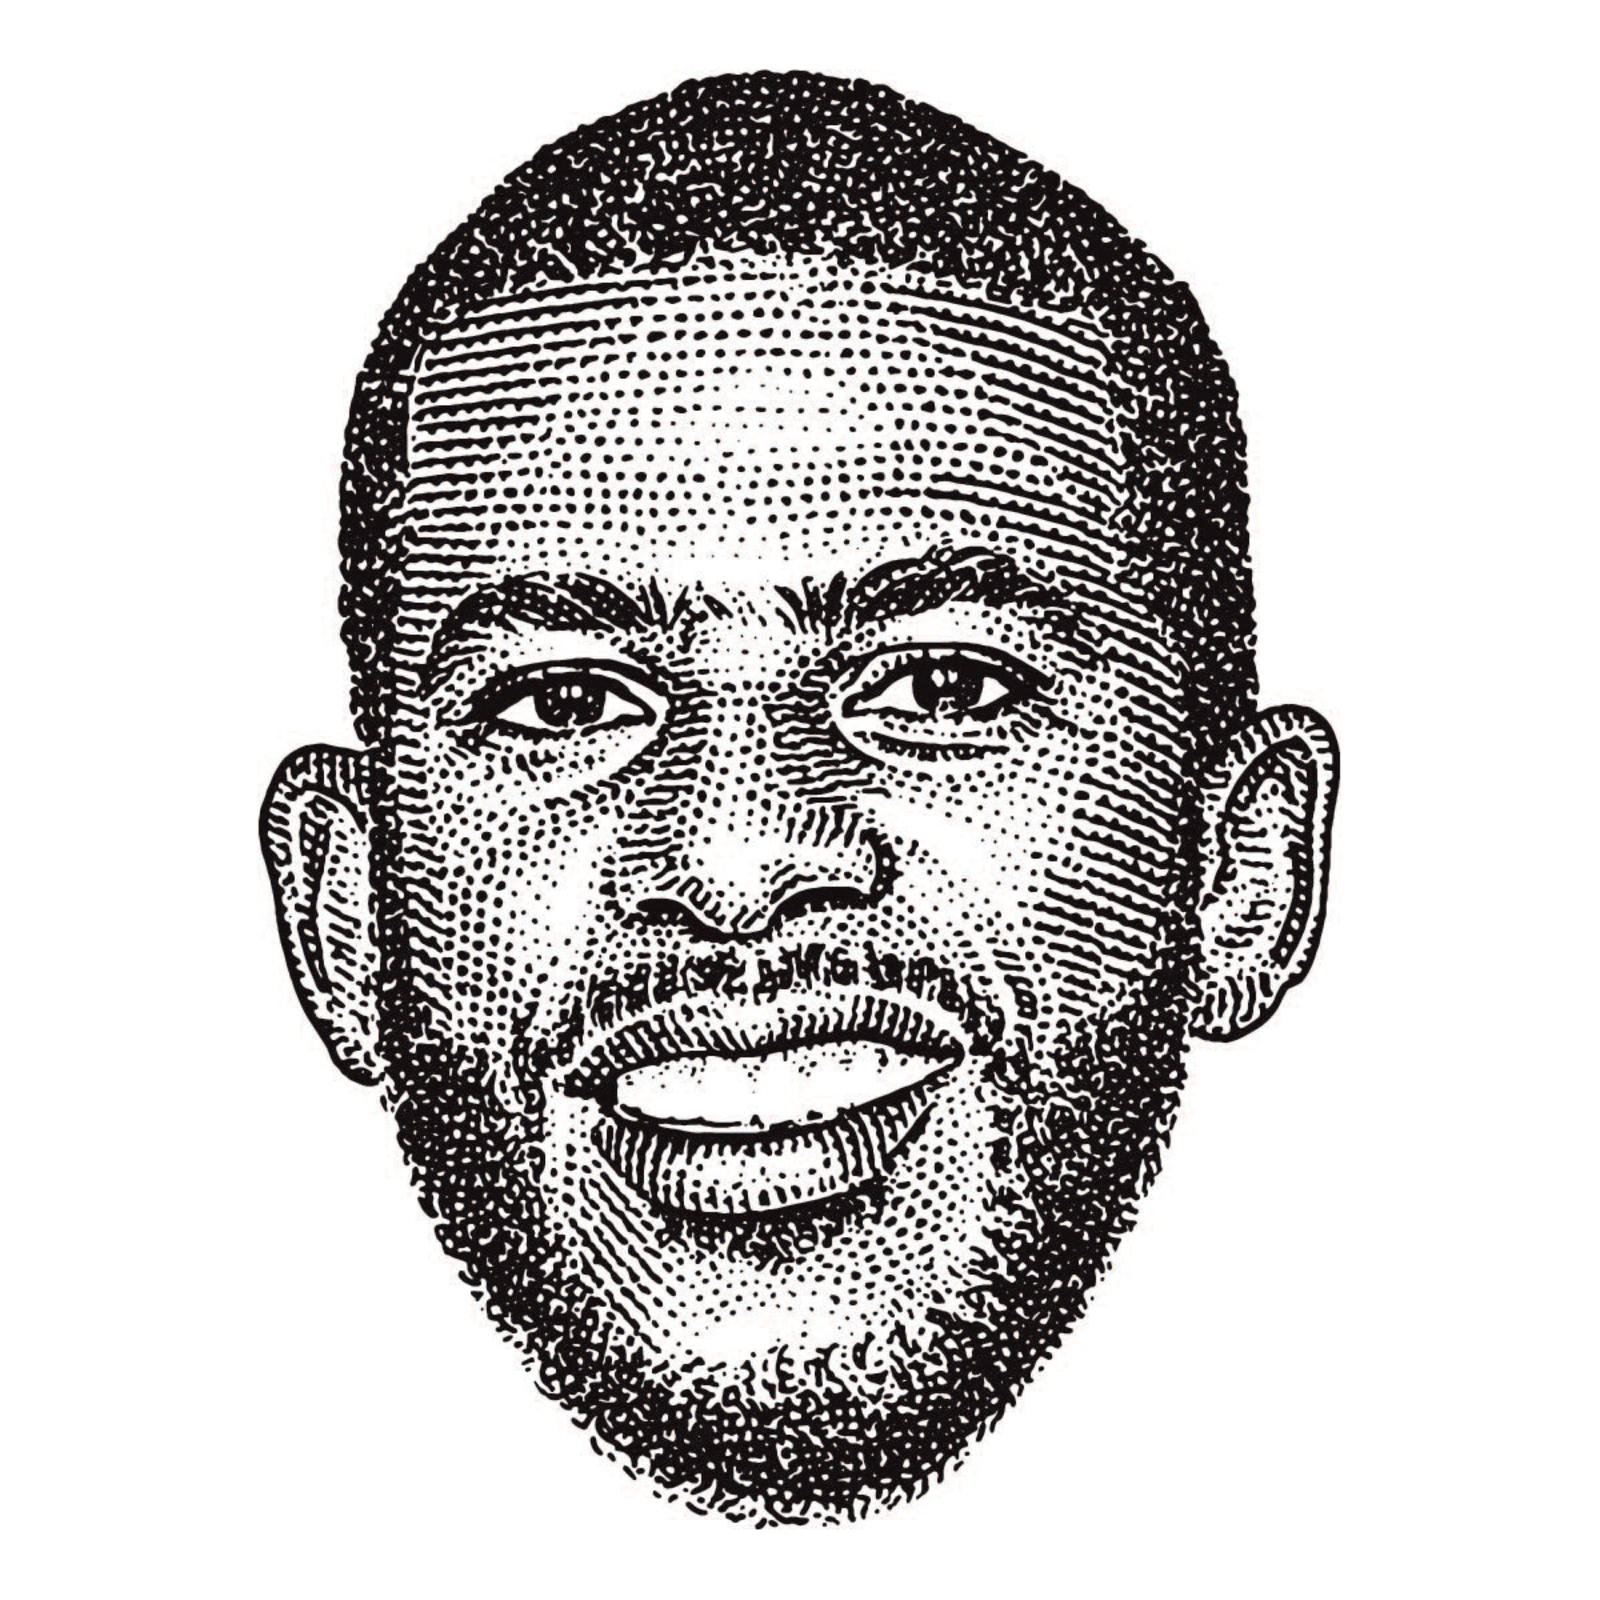 Jordan Athlete Chris Paul